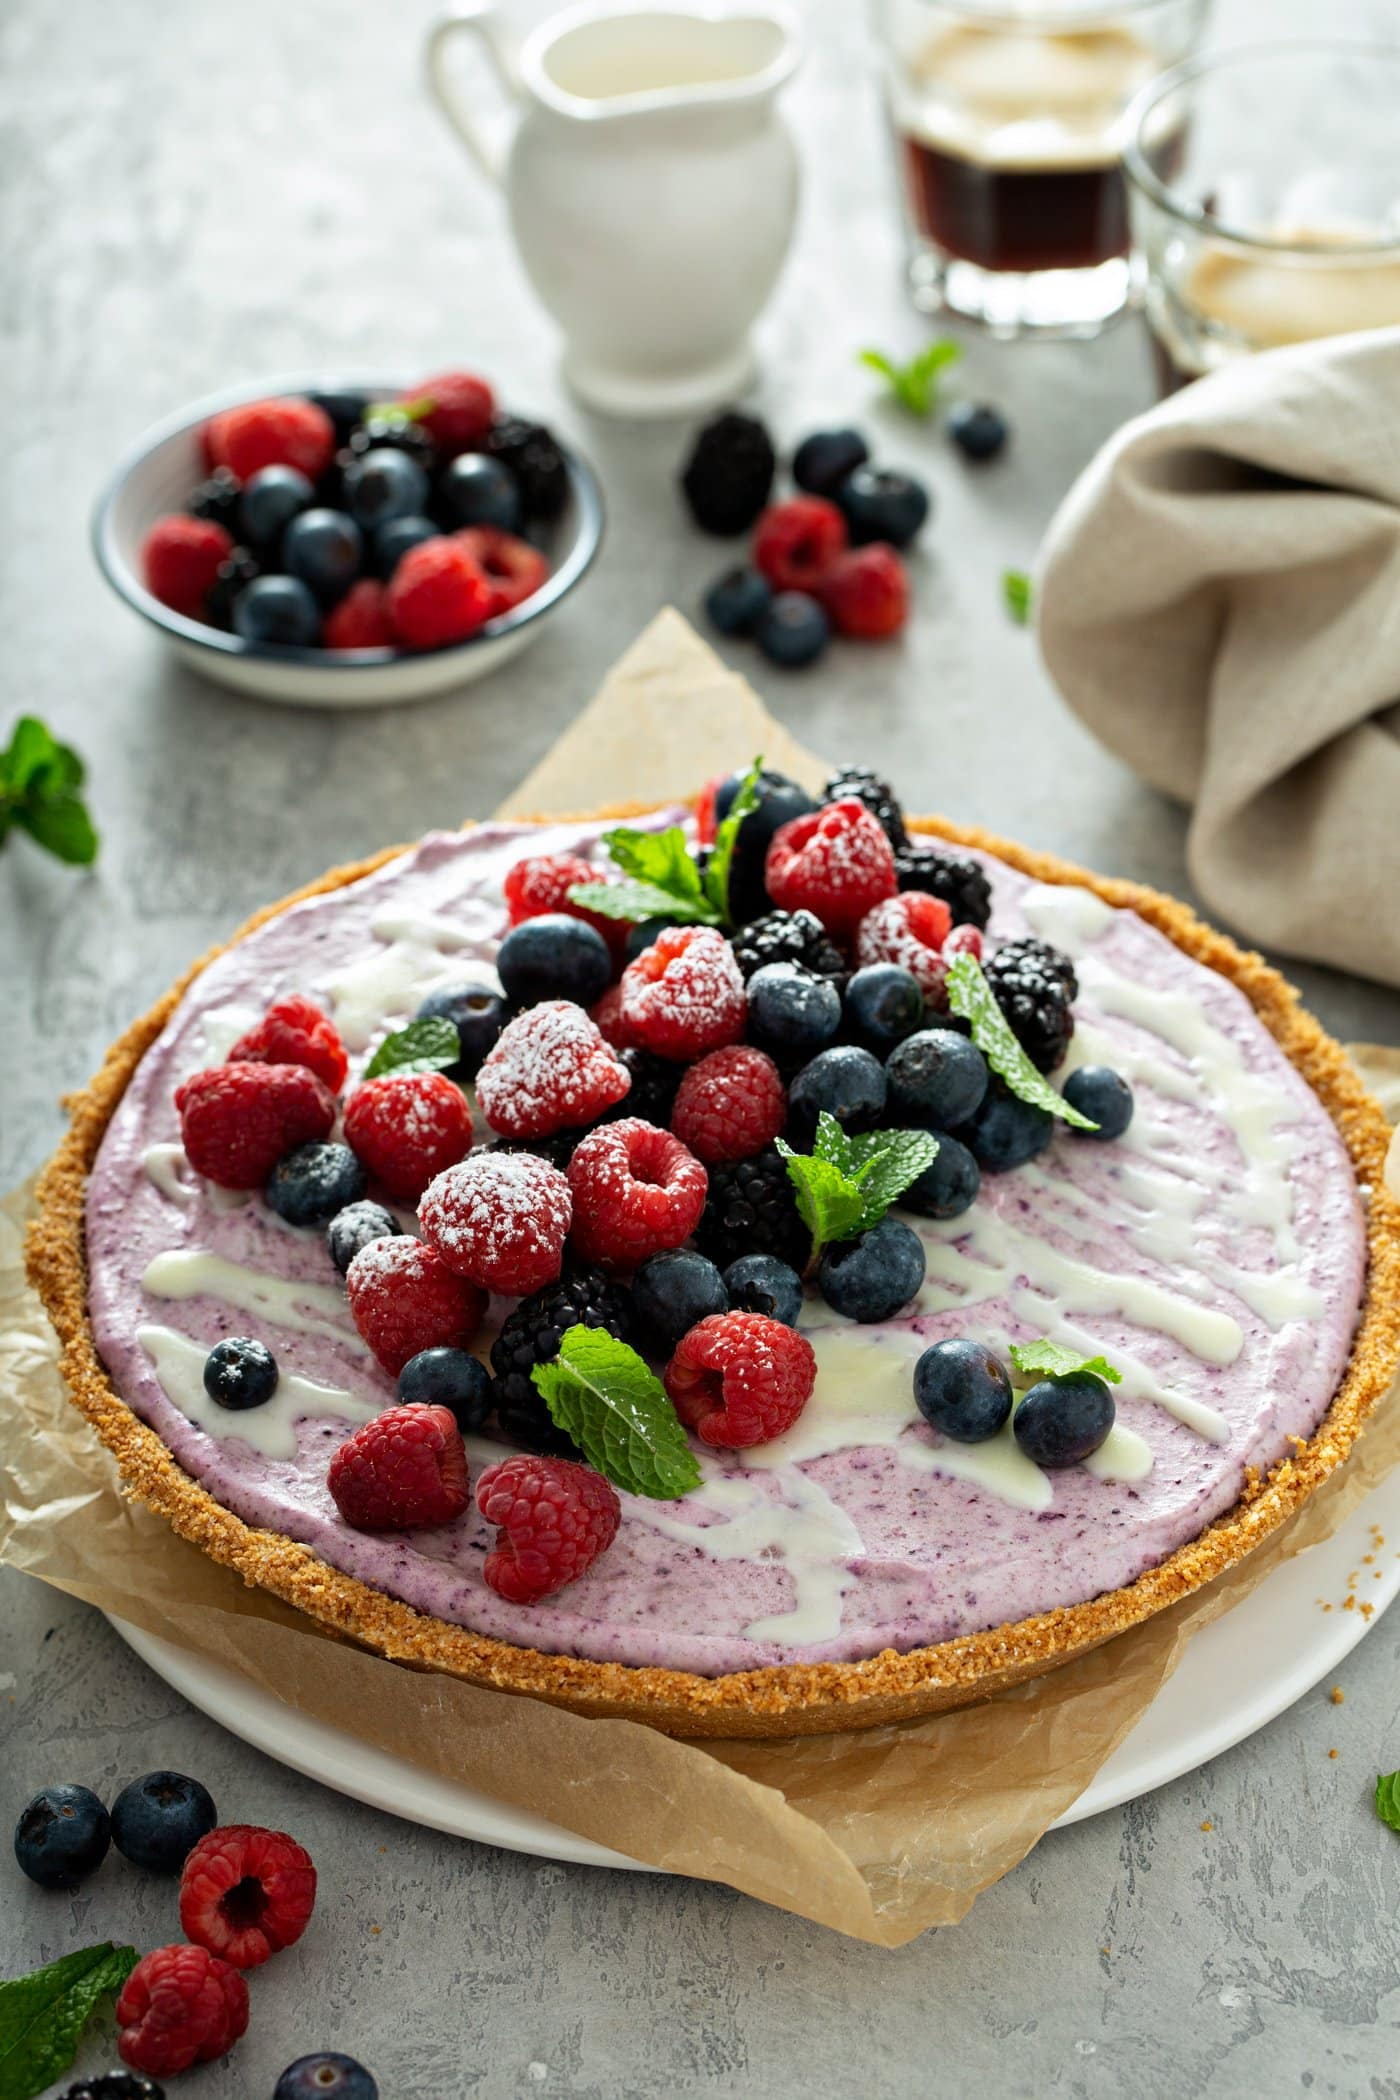 A whole white chocolate berry pie with mixed berries and mint leaves on top. A bowl of mixed berries is in the background and there are berries, mint leaves and a napkin on the table.